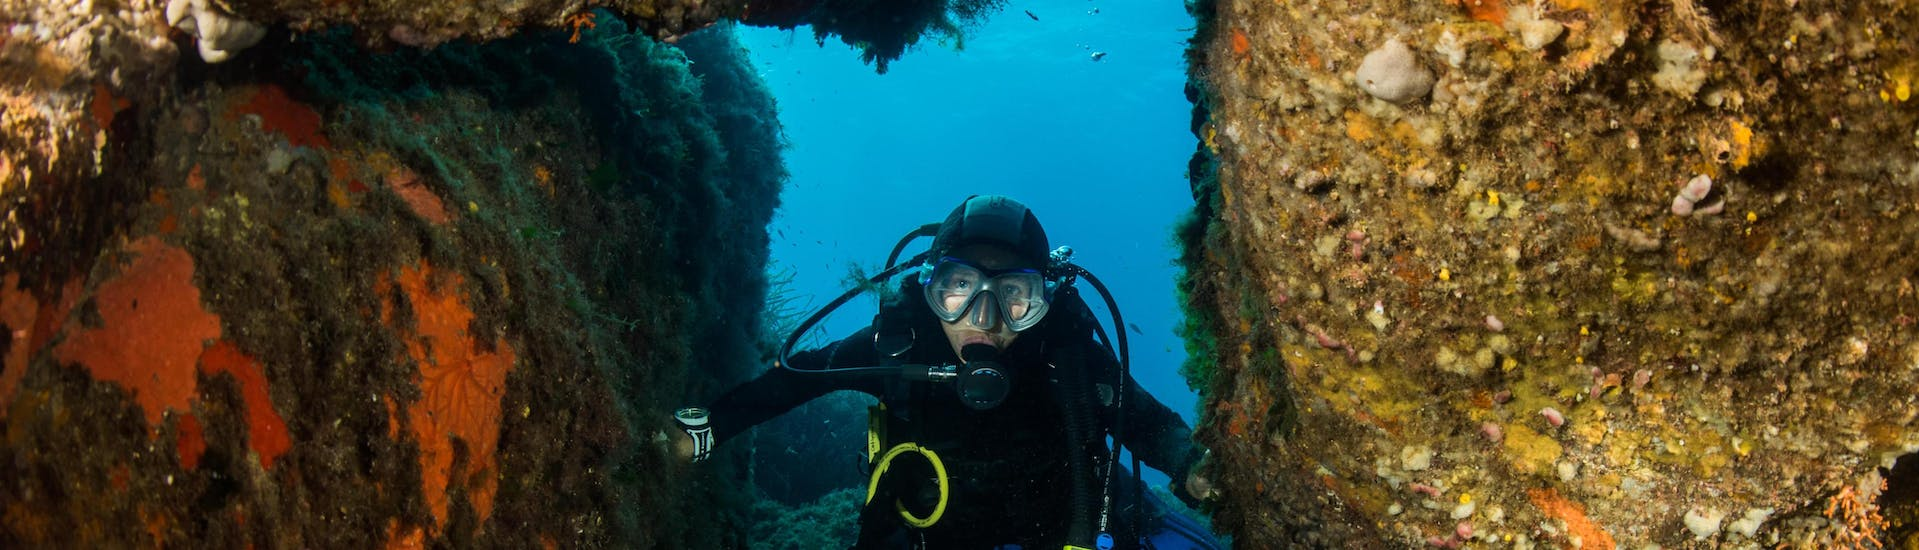 A diver is enjoying the seabed in Porto-Vecchio, Corsica during a diving excursion.